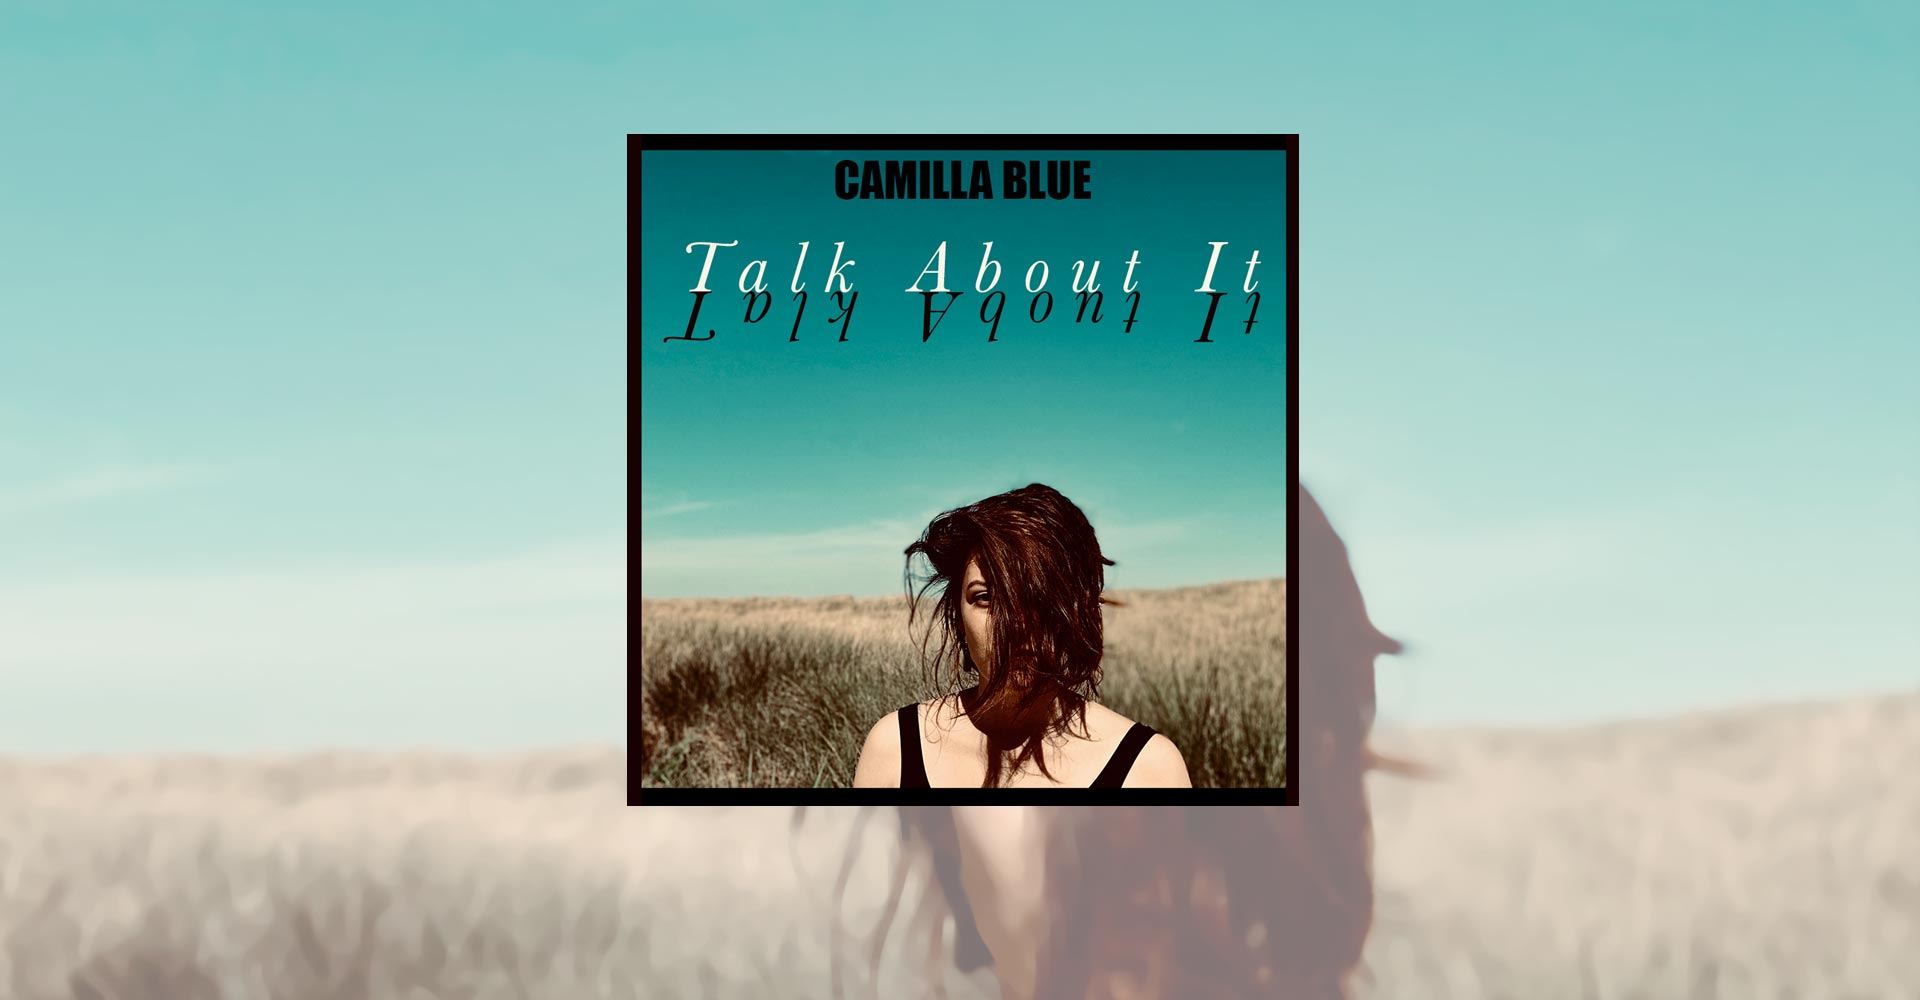 camilla-blue-talk about it